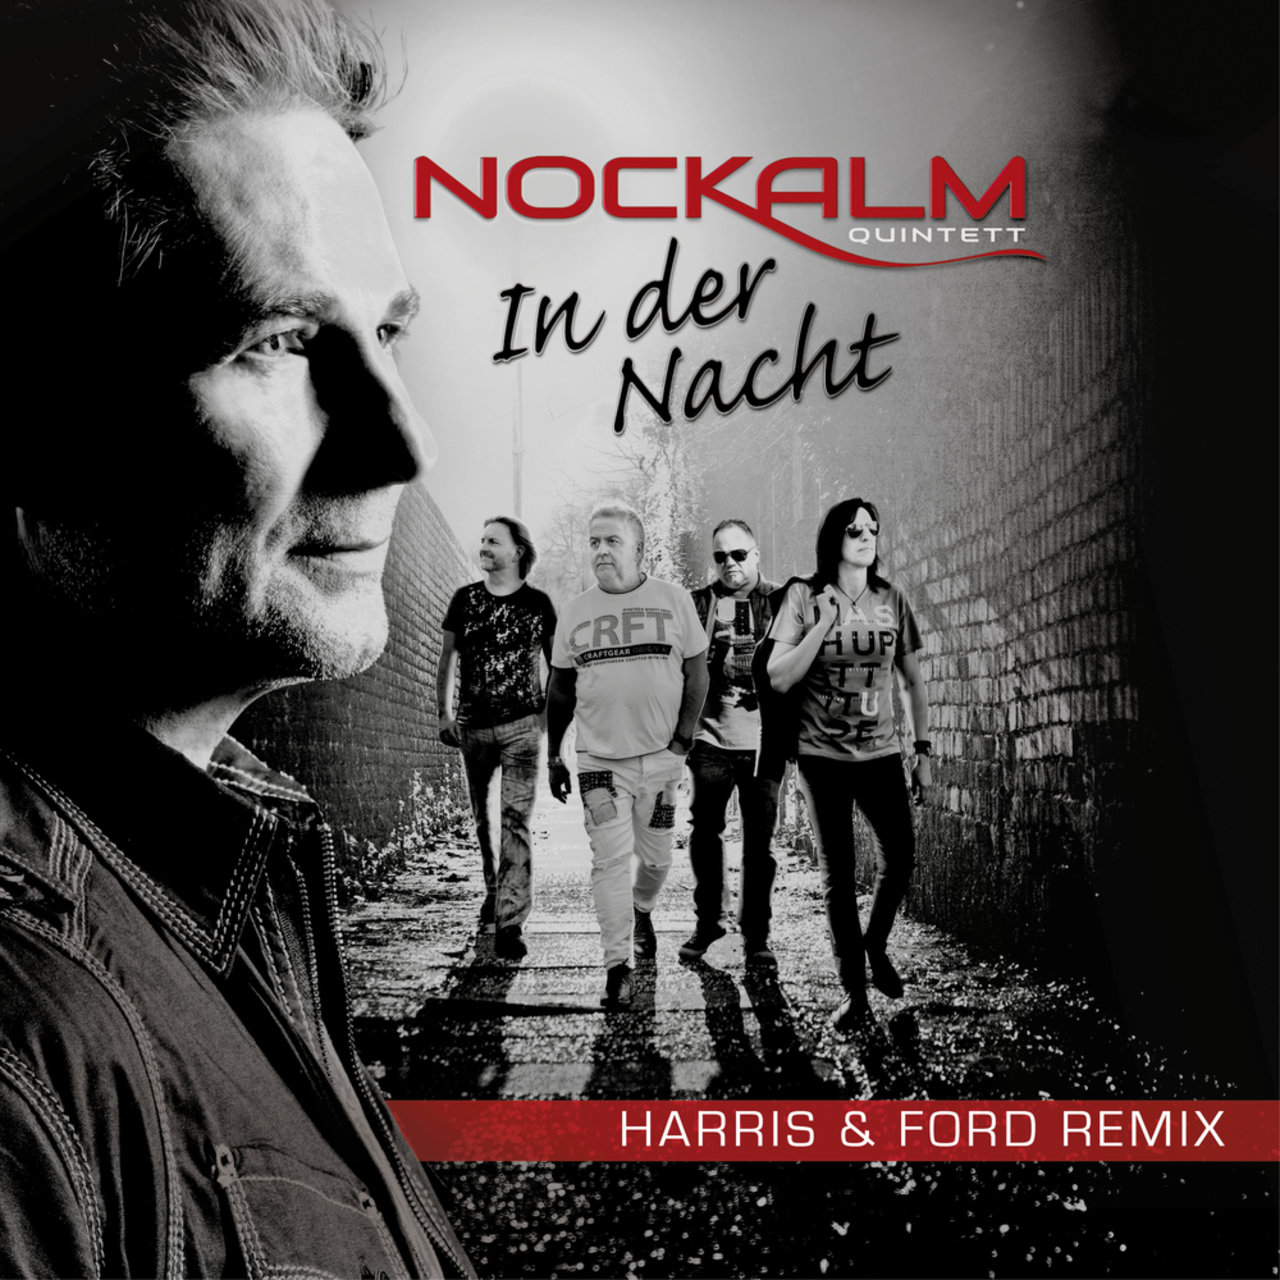 TIDAL: Listen to In der Nacht (Harris & Ford Remix) on TIDAL